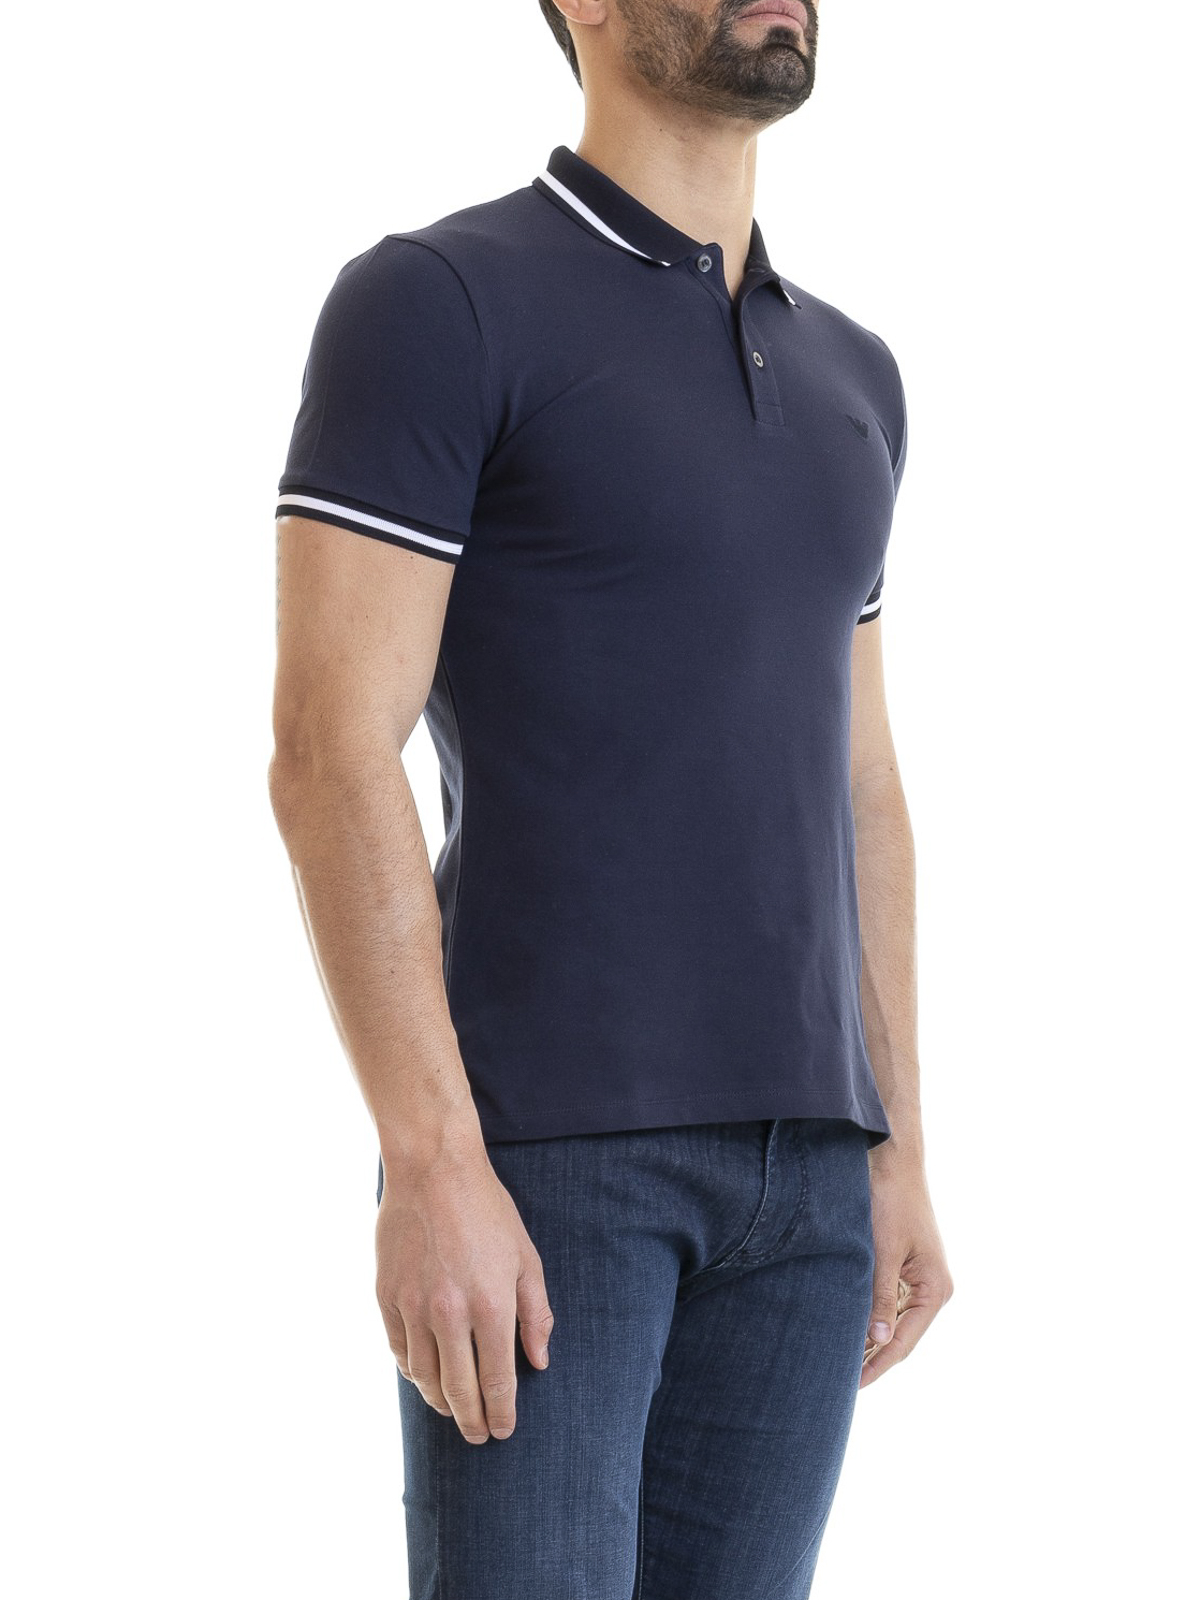 66342edb3b Emporio Armani - Blue stretch cotton polo shirt - polo shirts ...